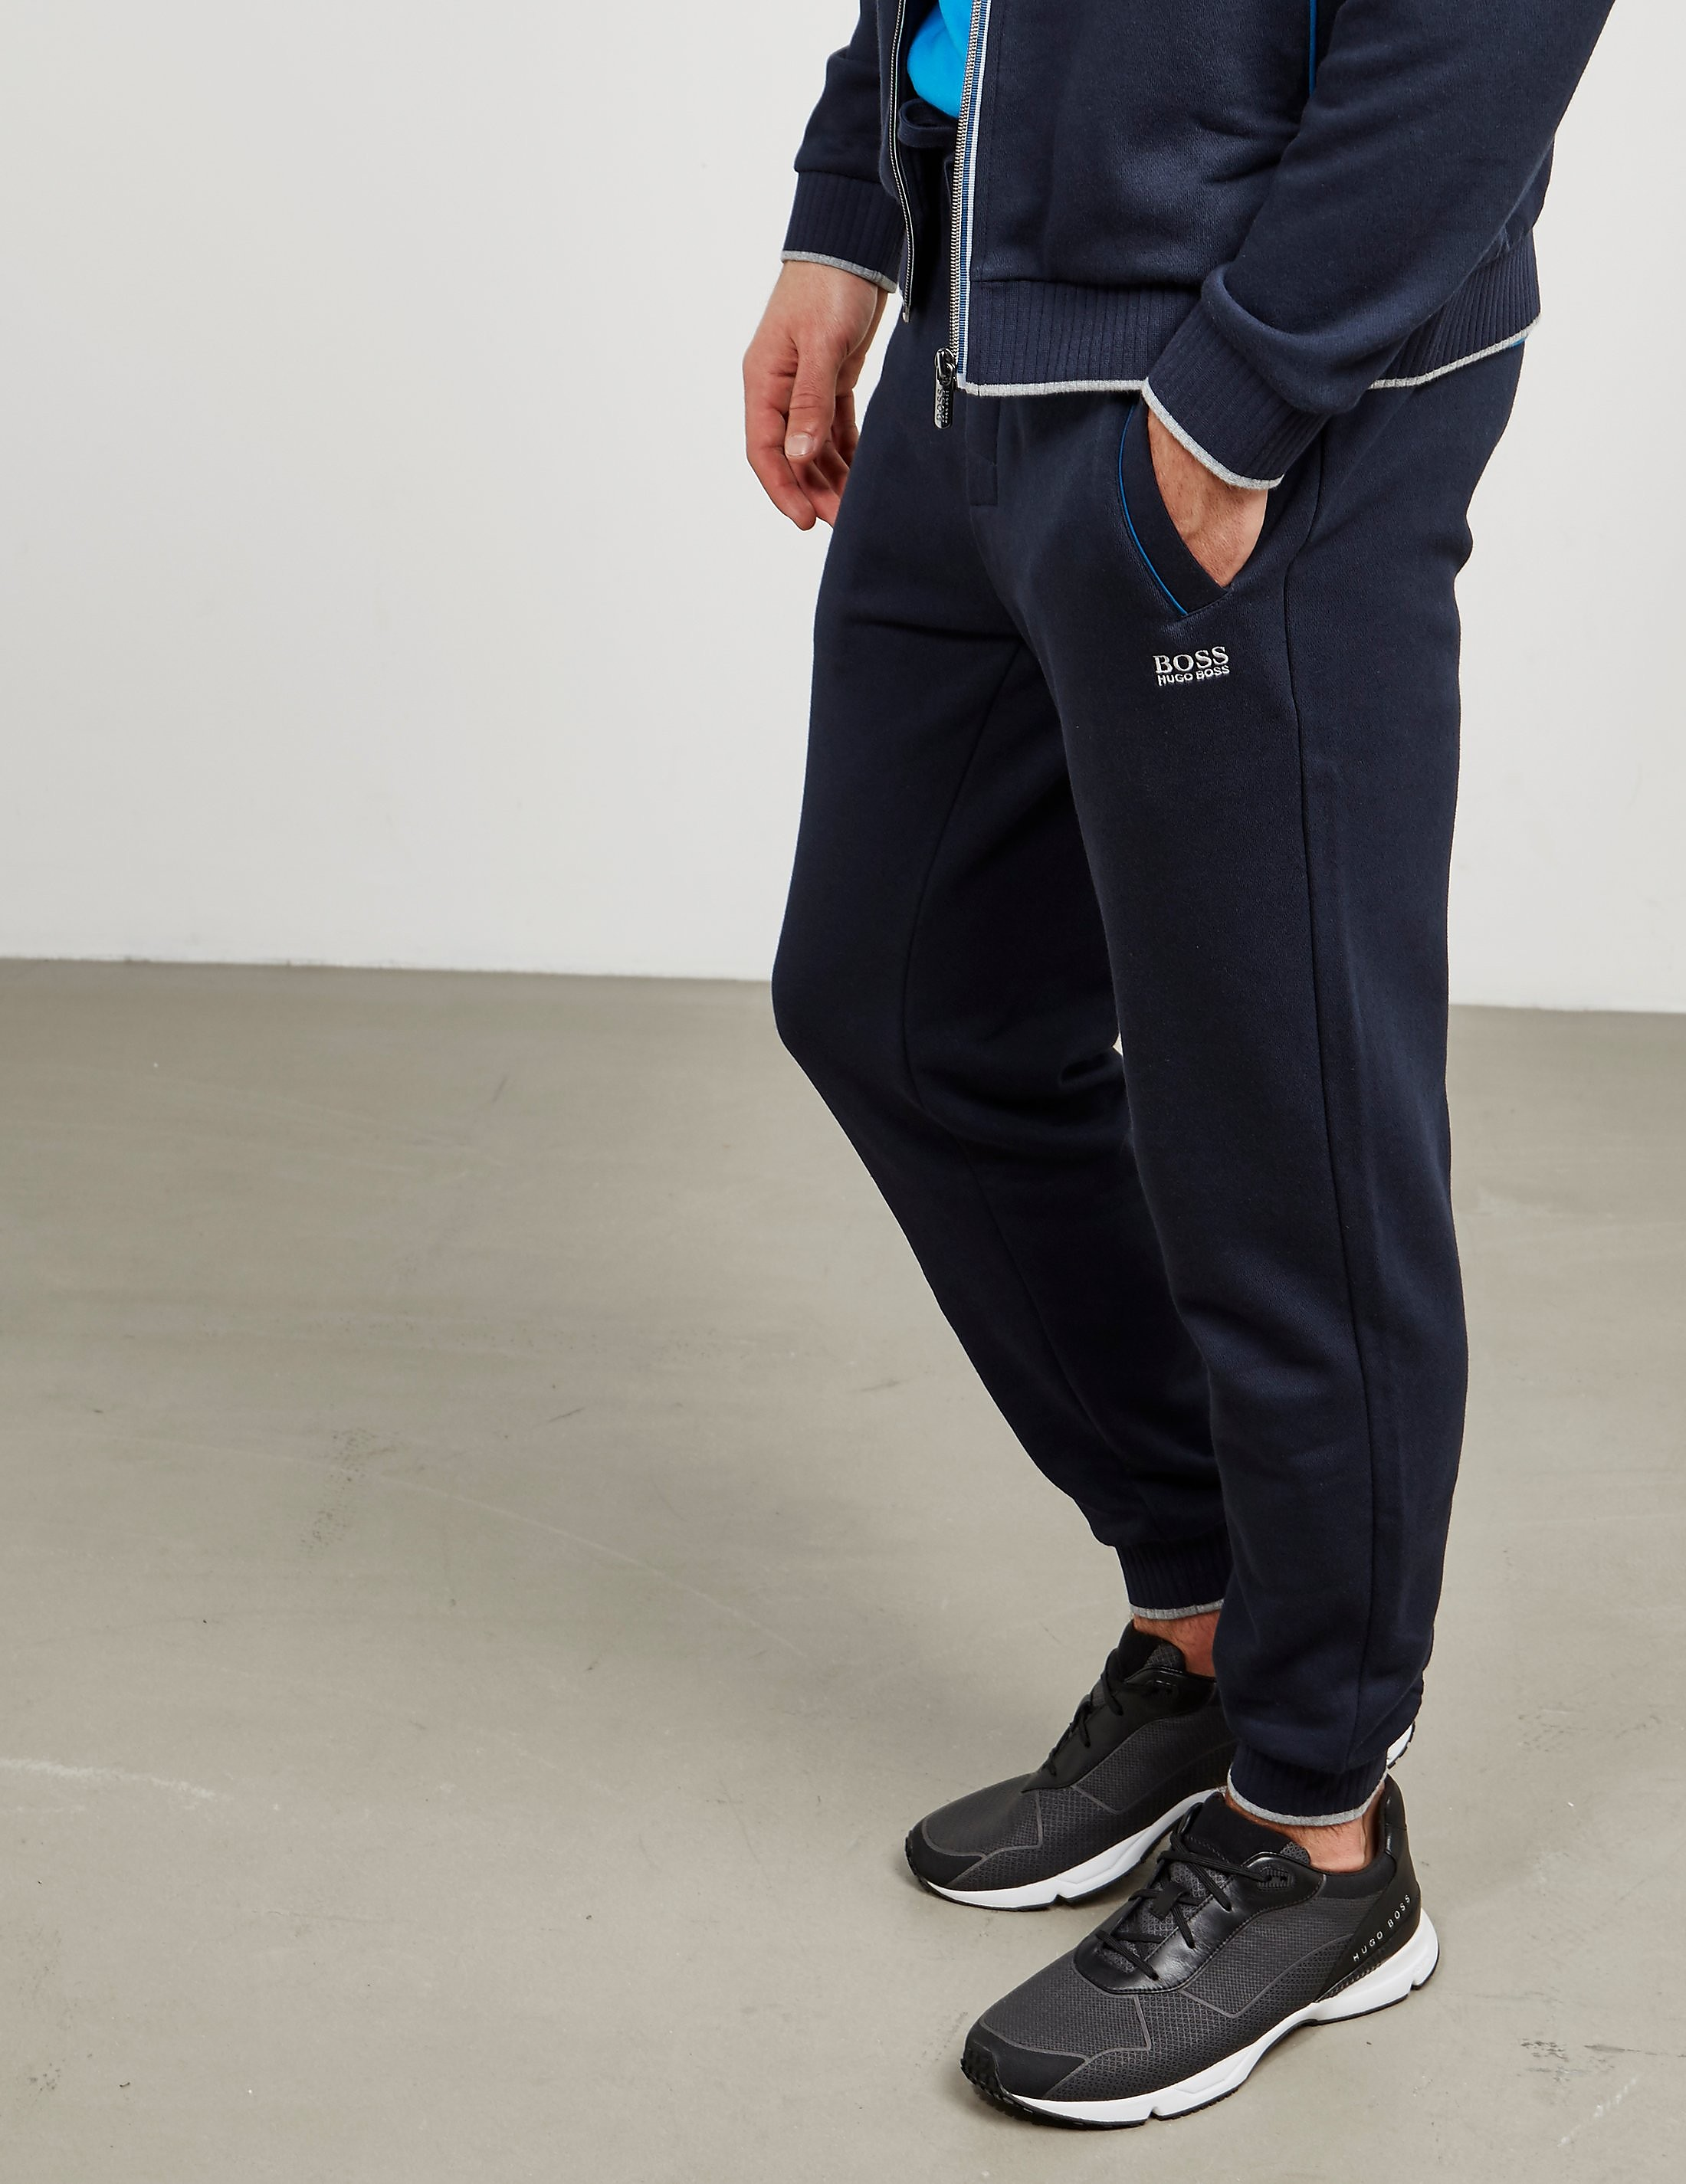 BOSS Authentic Cuffed Track Pant